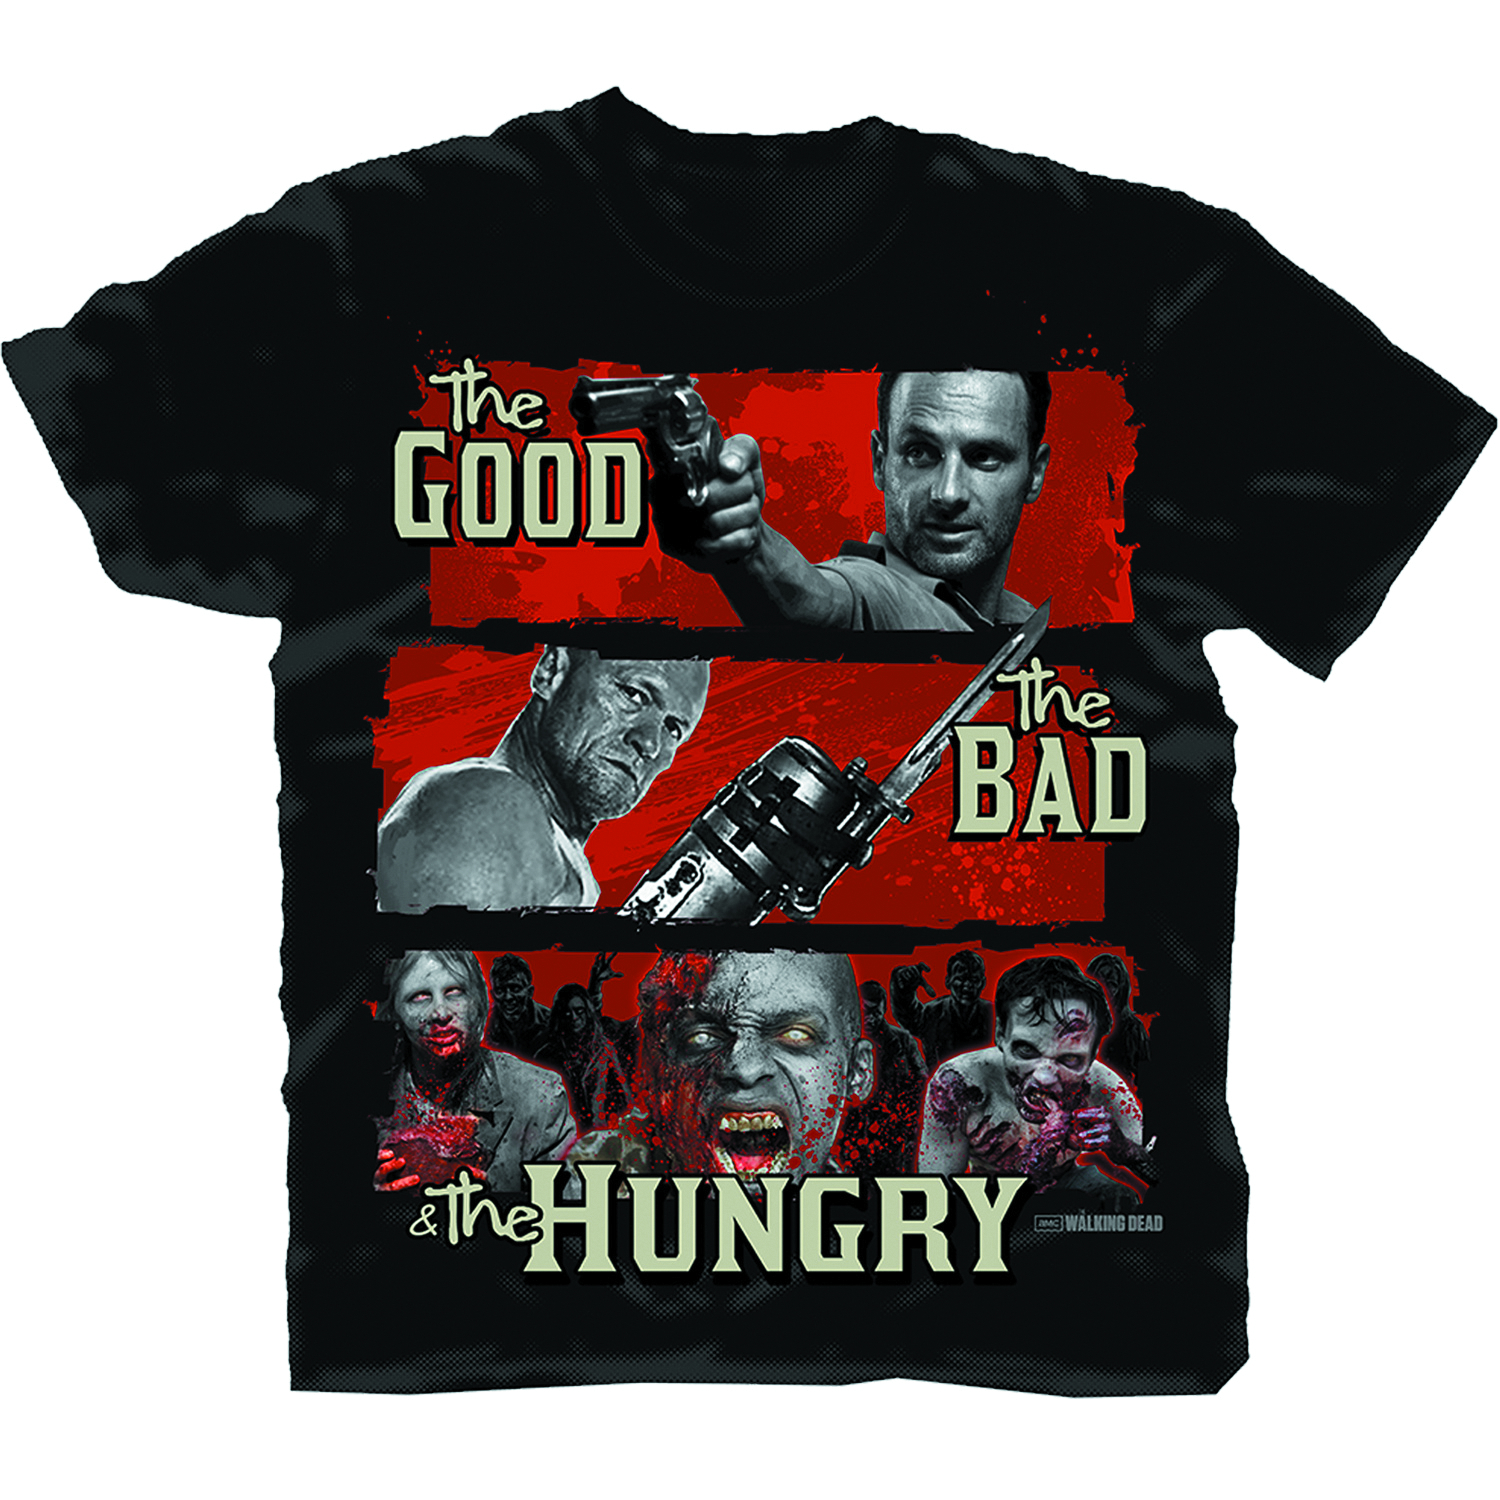 WALKING DEAD GOOD BAD HUNGRY PX BLK T/S MED